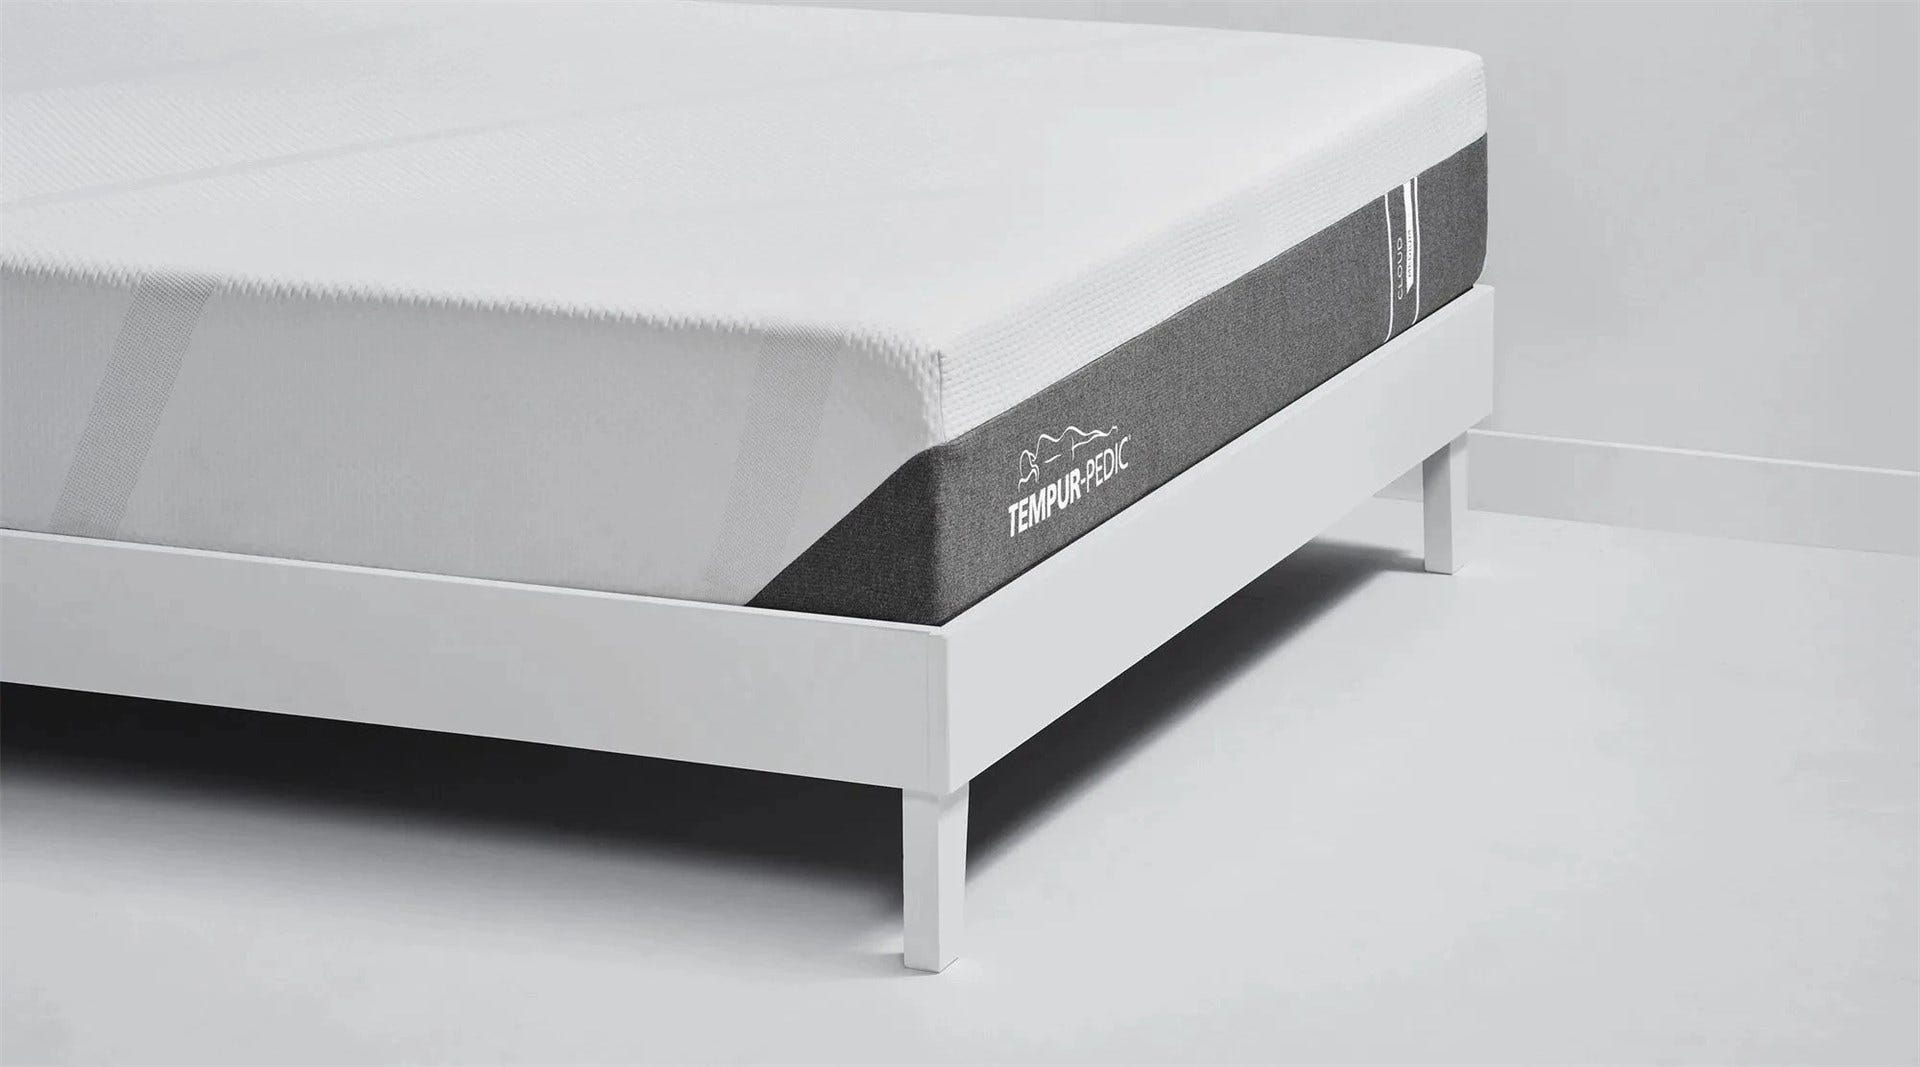 The corner and back edge of the Tempur-Pedic Cloud mattress